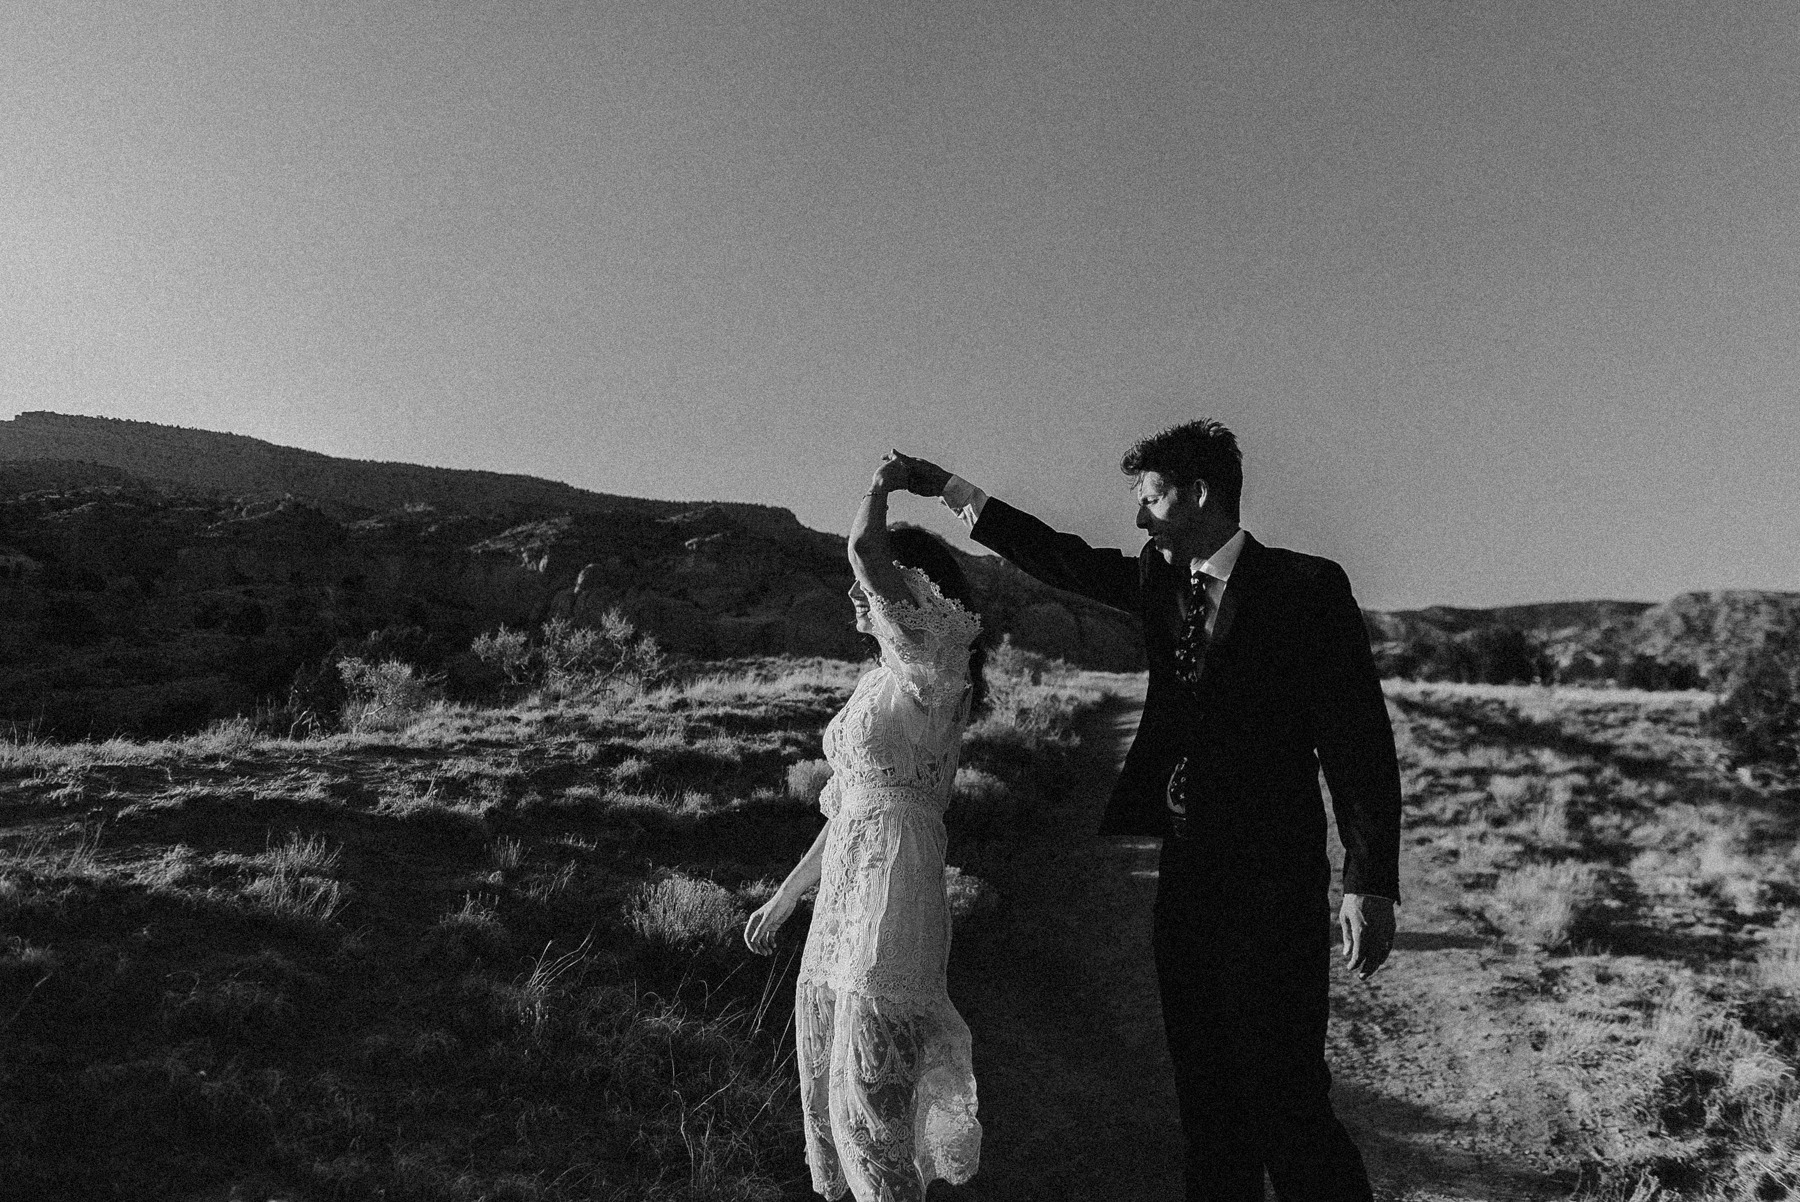 Elopement in New Mexico | New Mexico Elopement | Elope in New Mexico | Desert elopement | Ghost Ranch Elopement | Elope in the Desert | Ashley Joyce Photography 2020